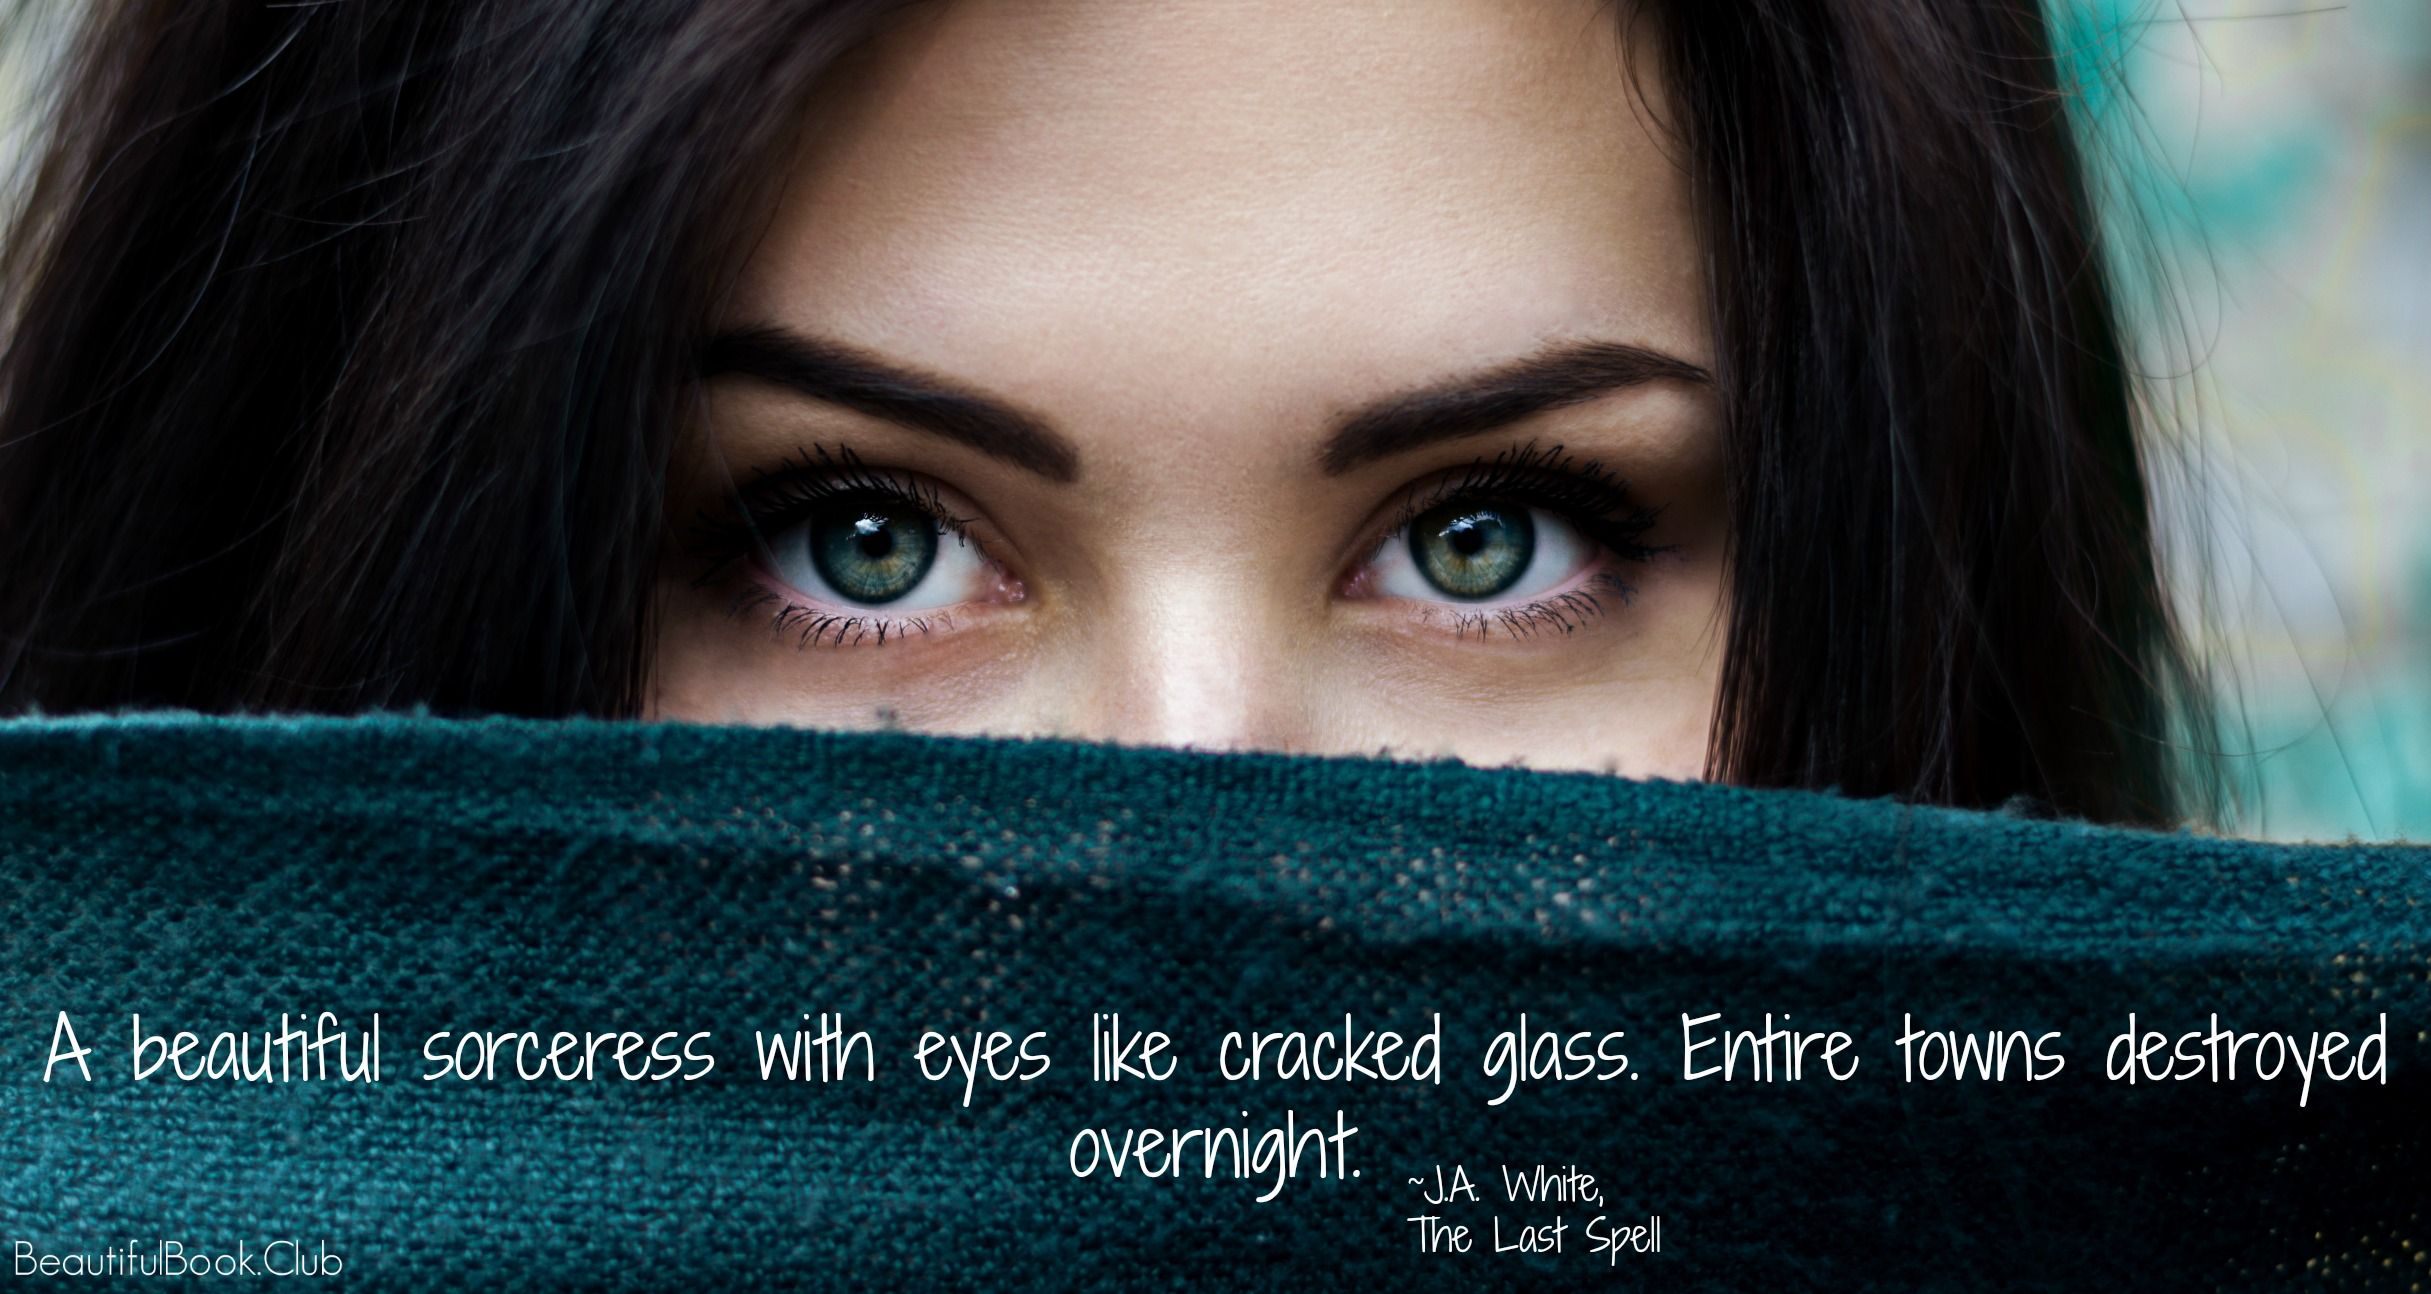 A beautiful sorceress with eyes like cracked glass. Entire town destroyed overnight. -J.A. White, The Last Spell